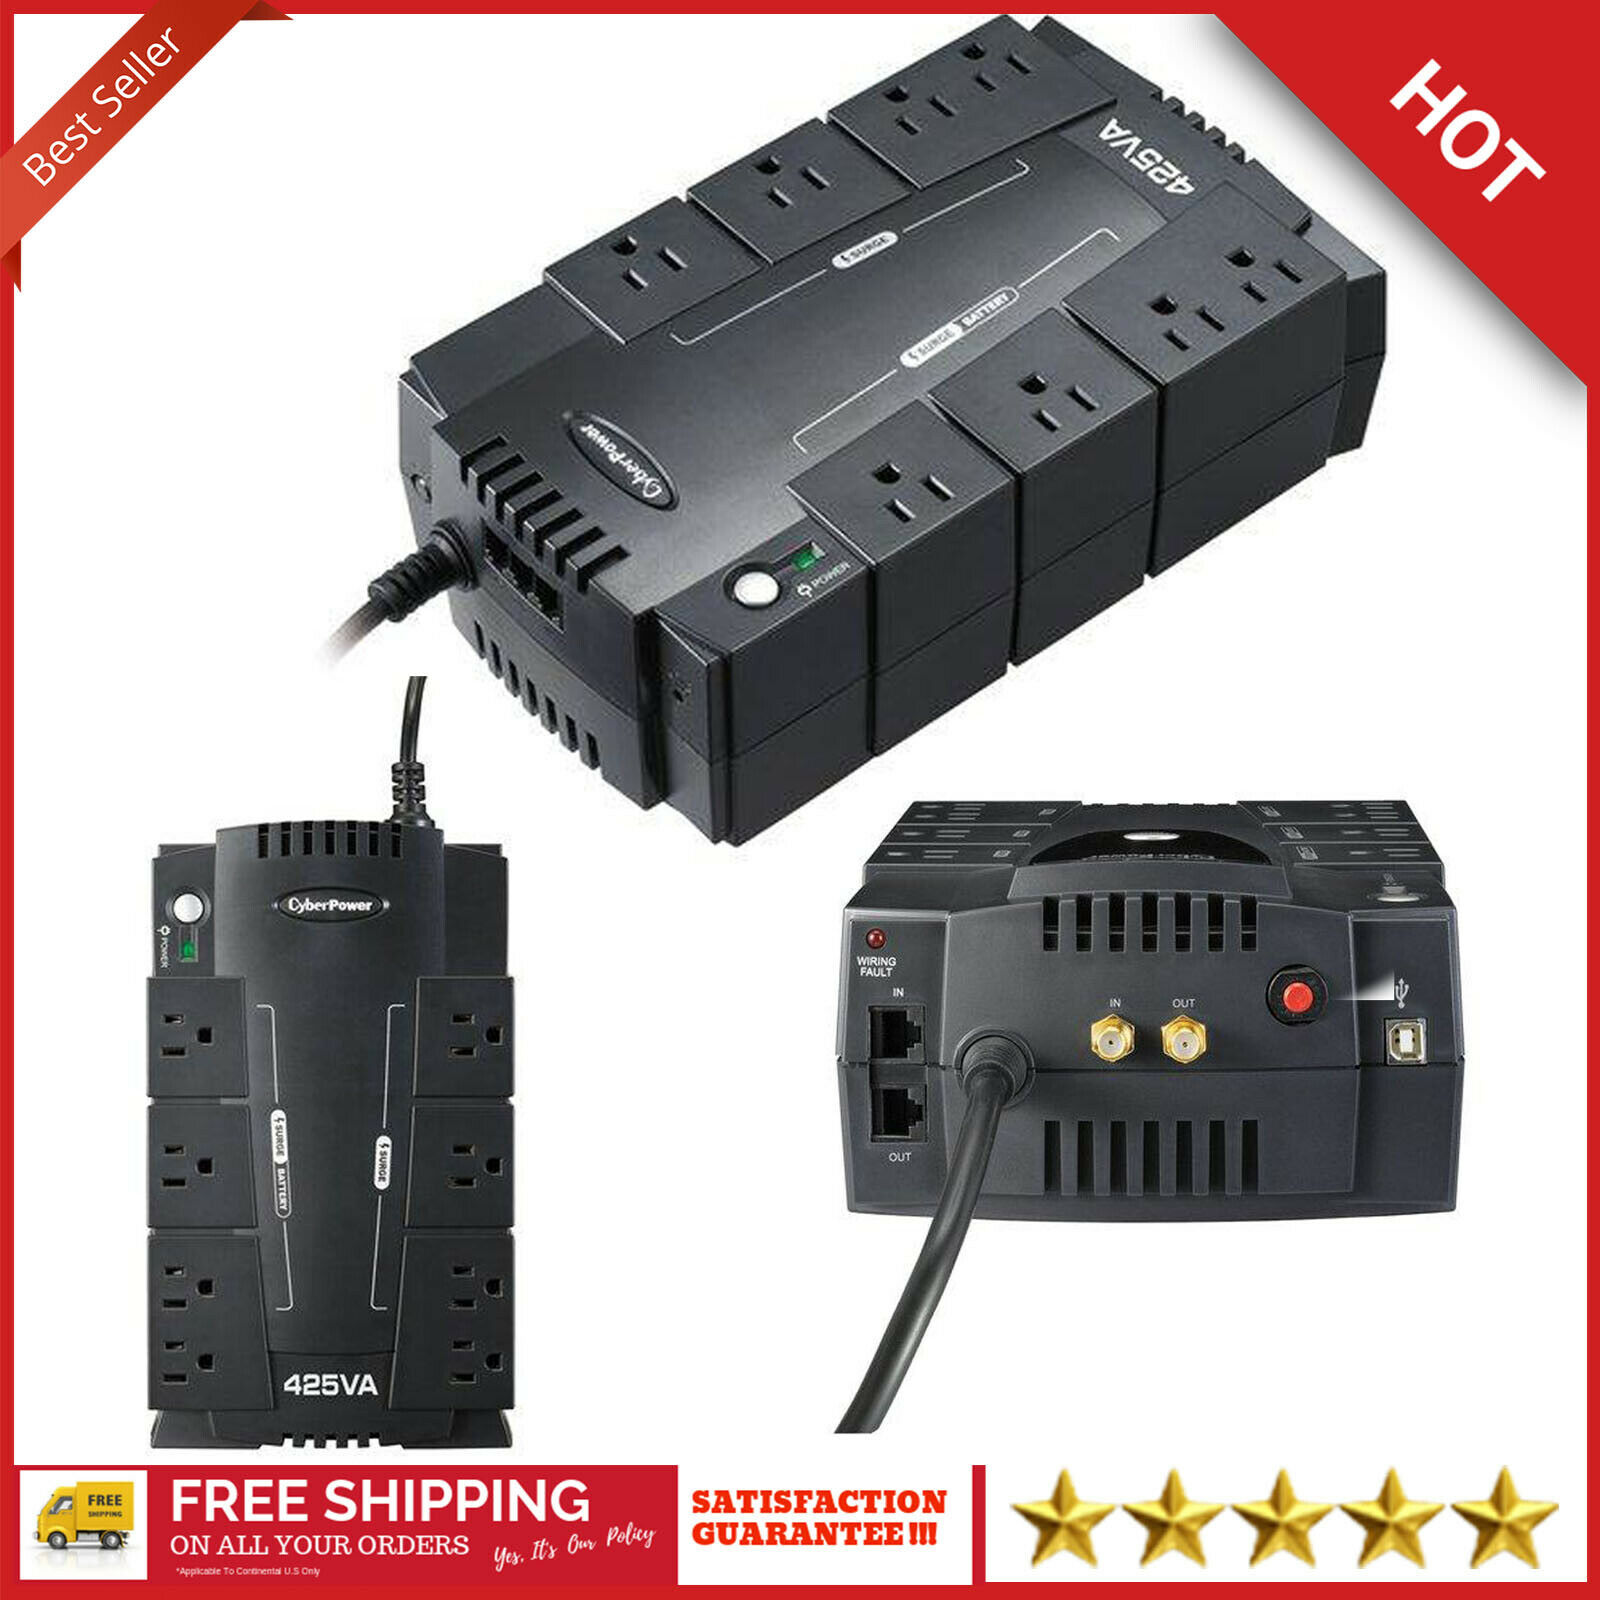 Details about 8 Outlet UPS Battery Backup Computer Uninterruptible Power  Supply Surge Protect